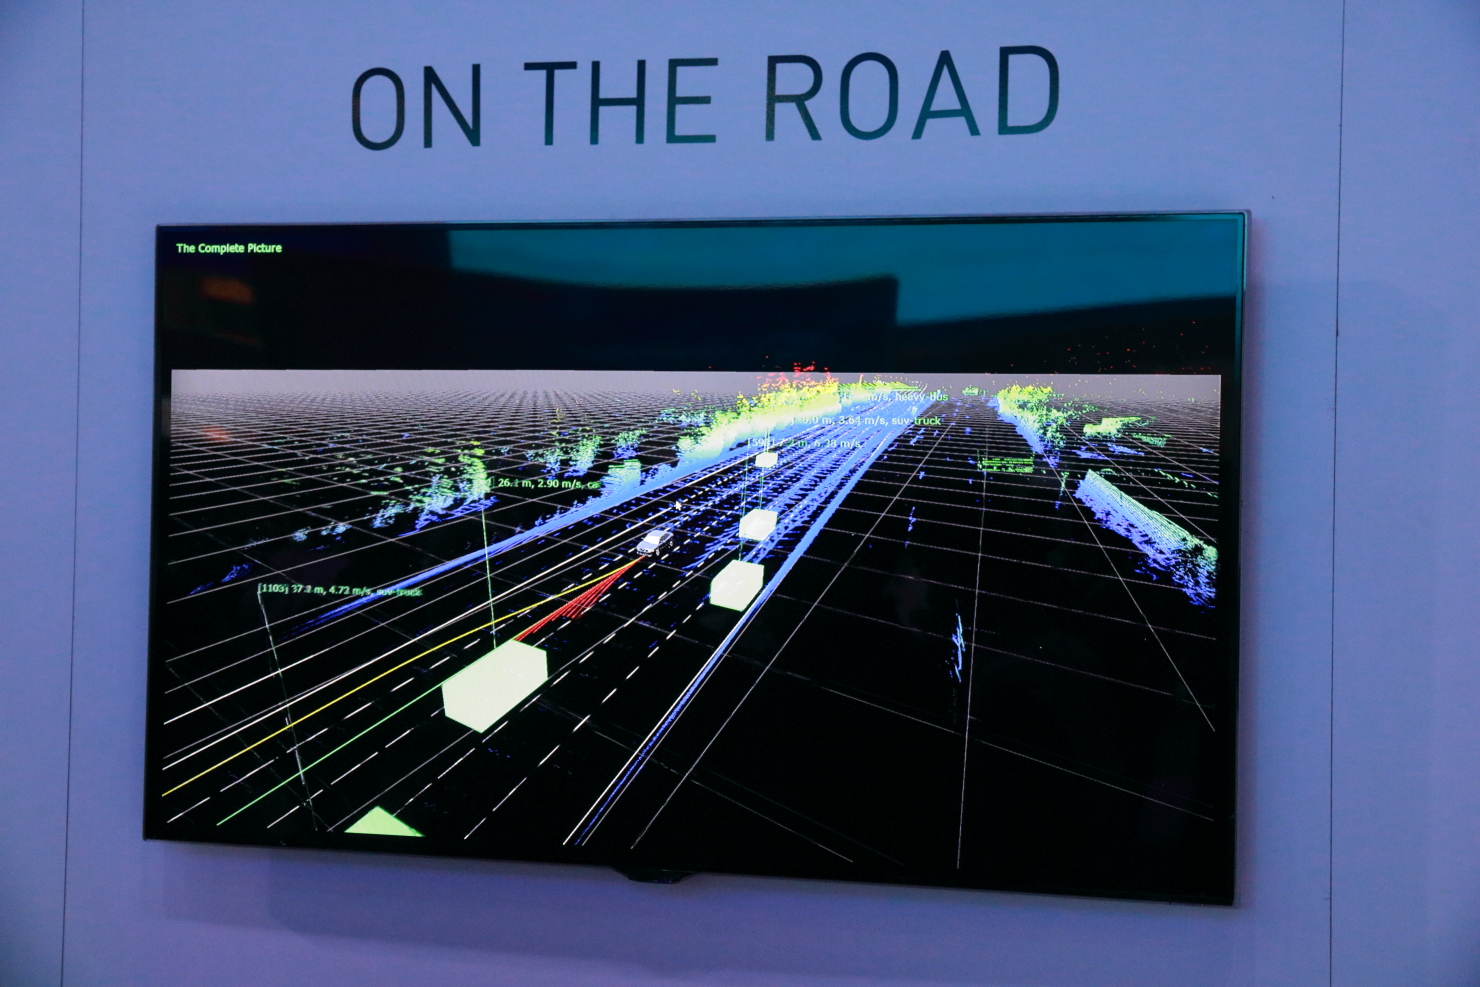 With the help of sensors, the Nvidia PX2 sees the road as data and reacts to it. (photo by João-Pierre S. Ruth)